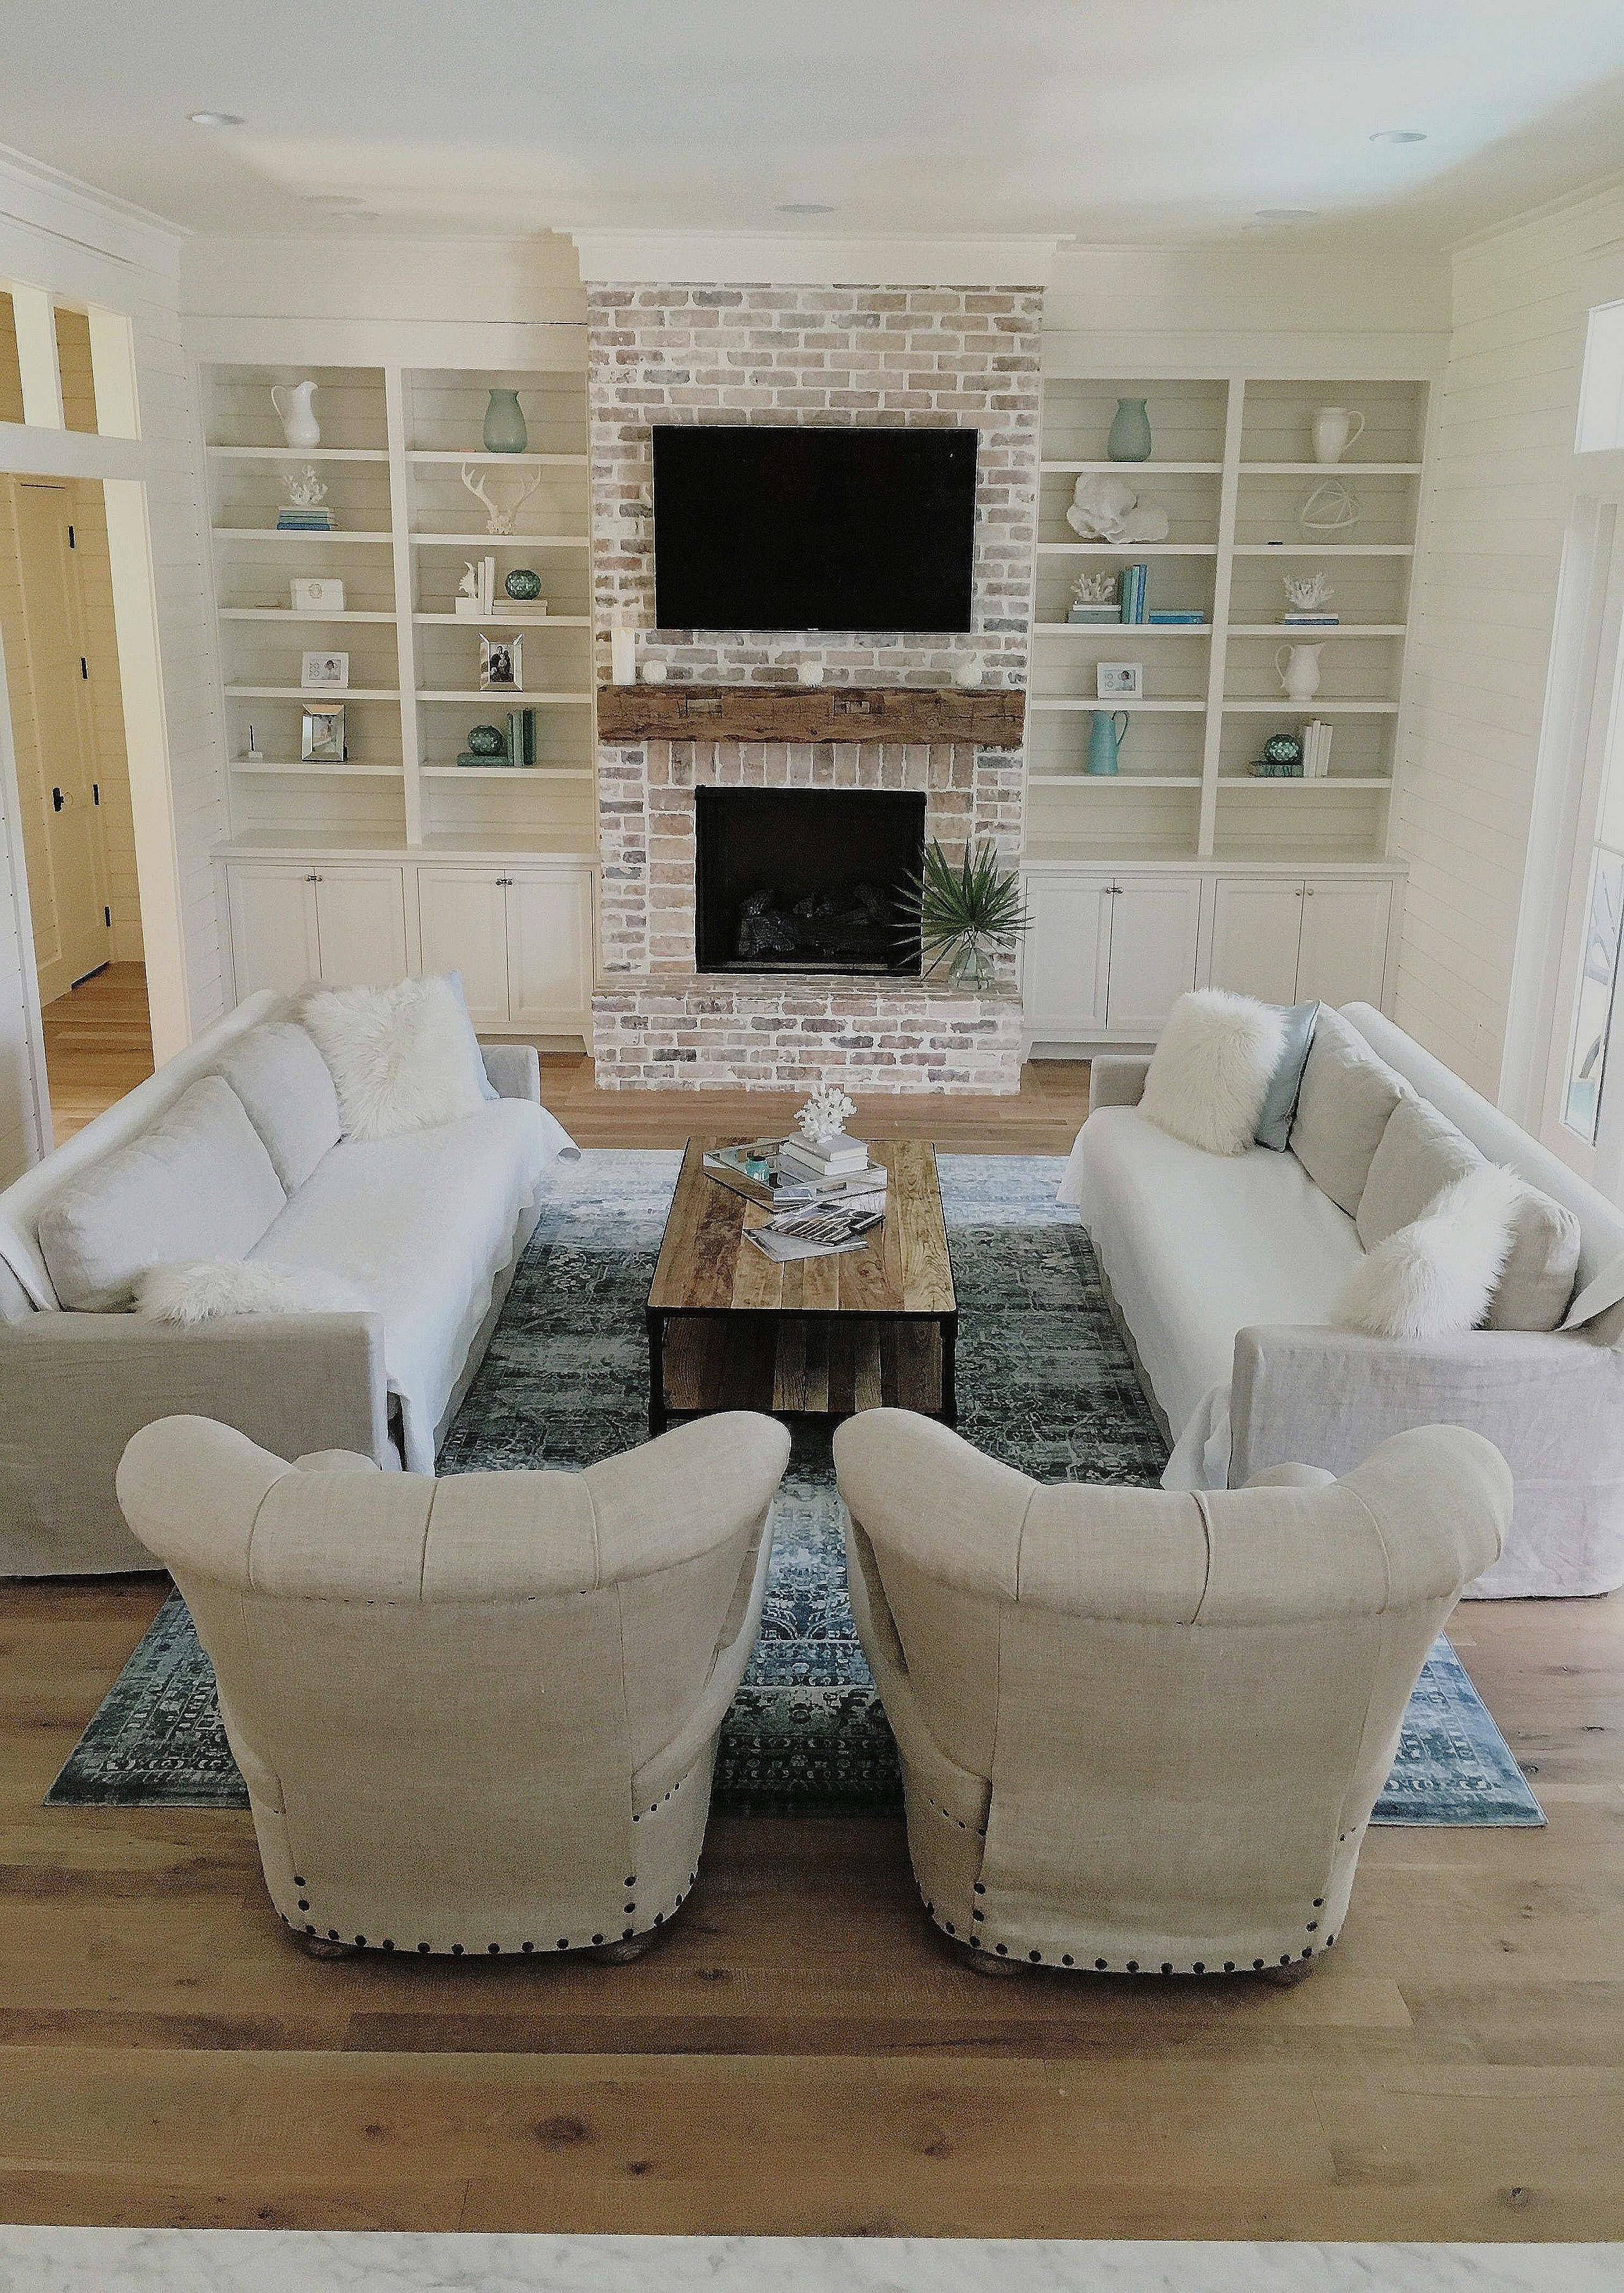 cabinets for living room designs luxury inspirational interior design living rooms contemporary of cabinets for living room designs